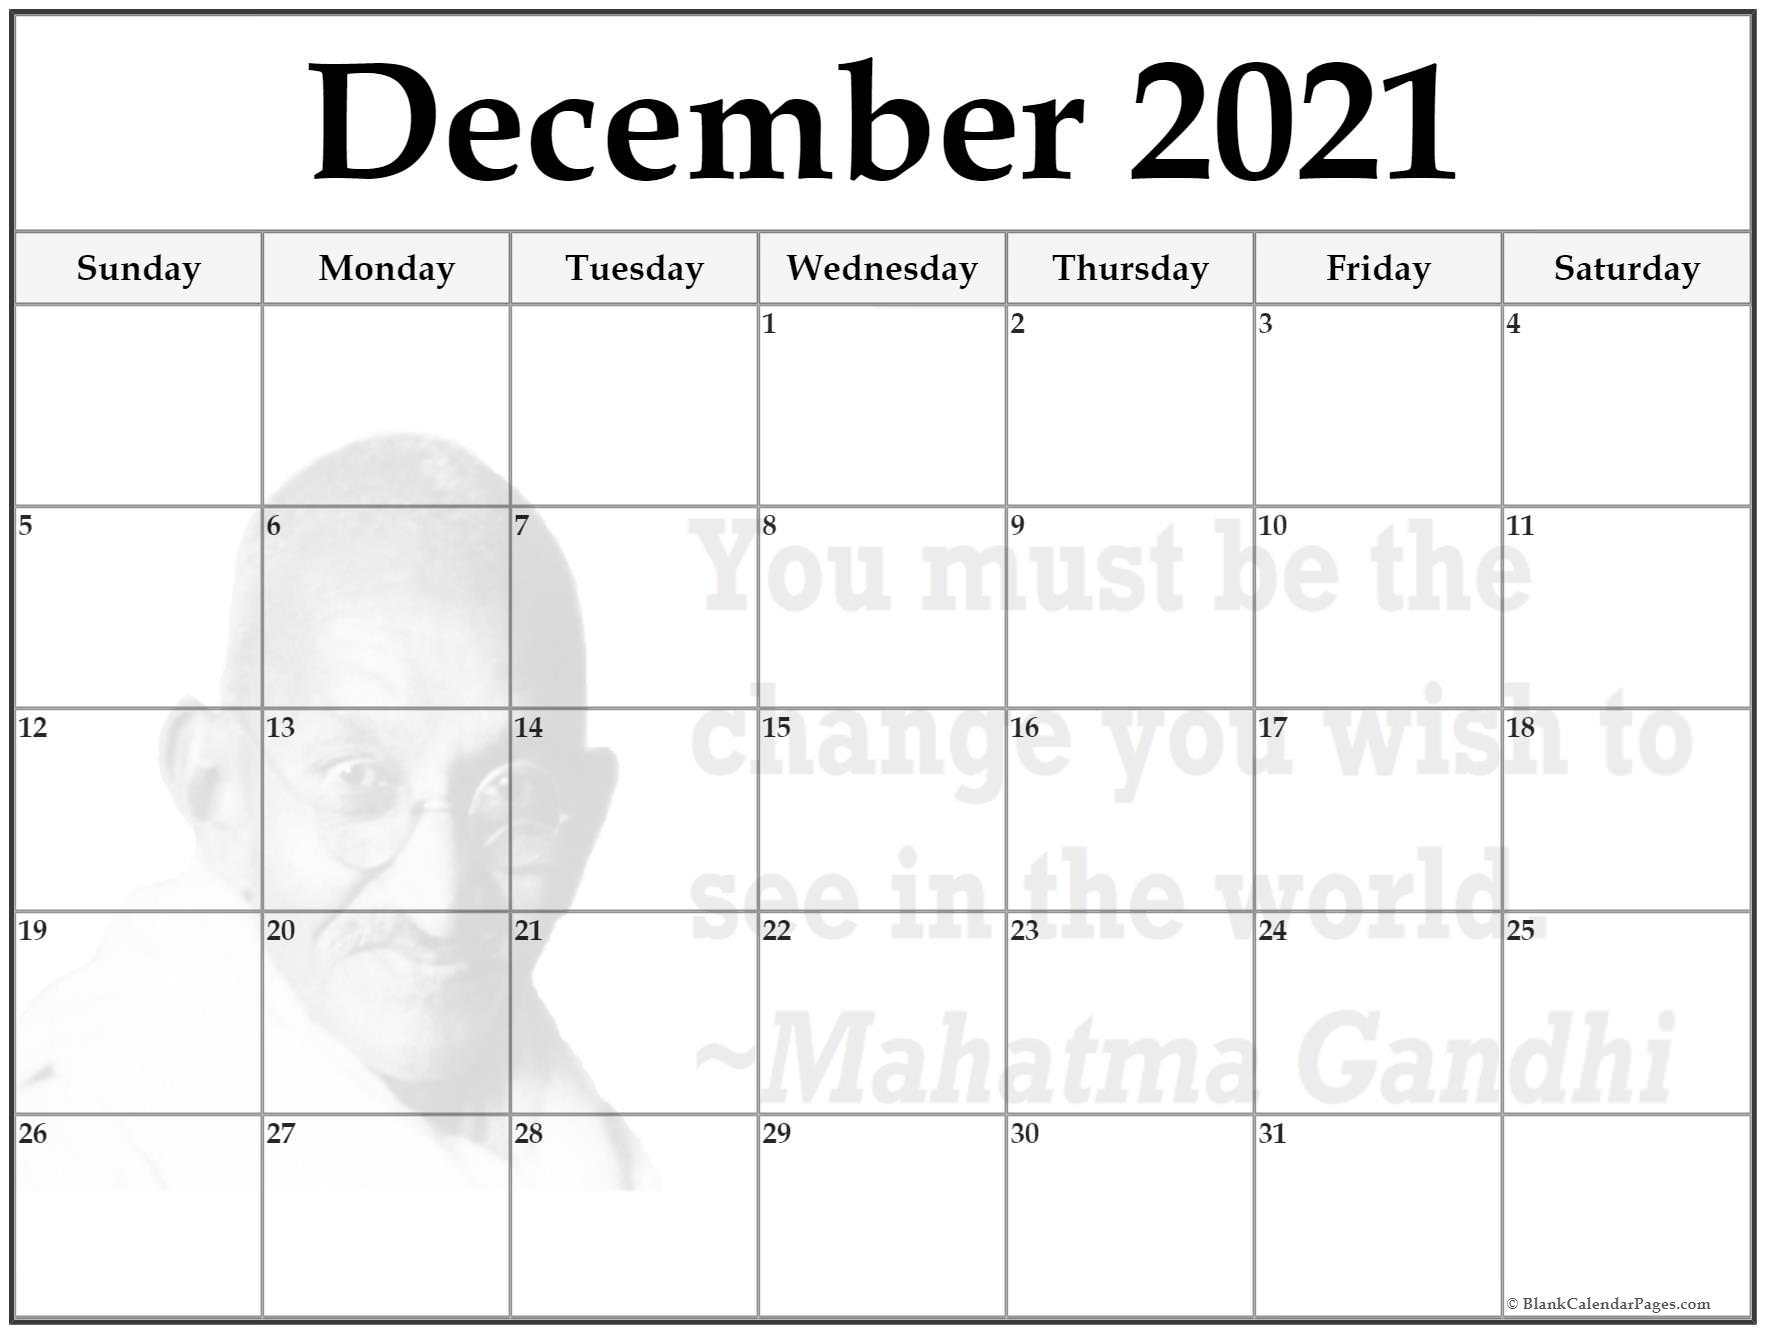 December 2021 monthly calendar template. You must be the change you wish to see in the world. ~Mahatma Gandhi